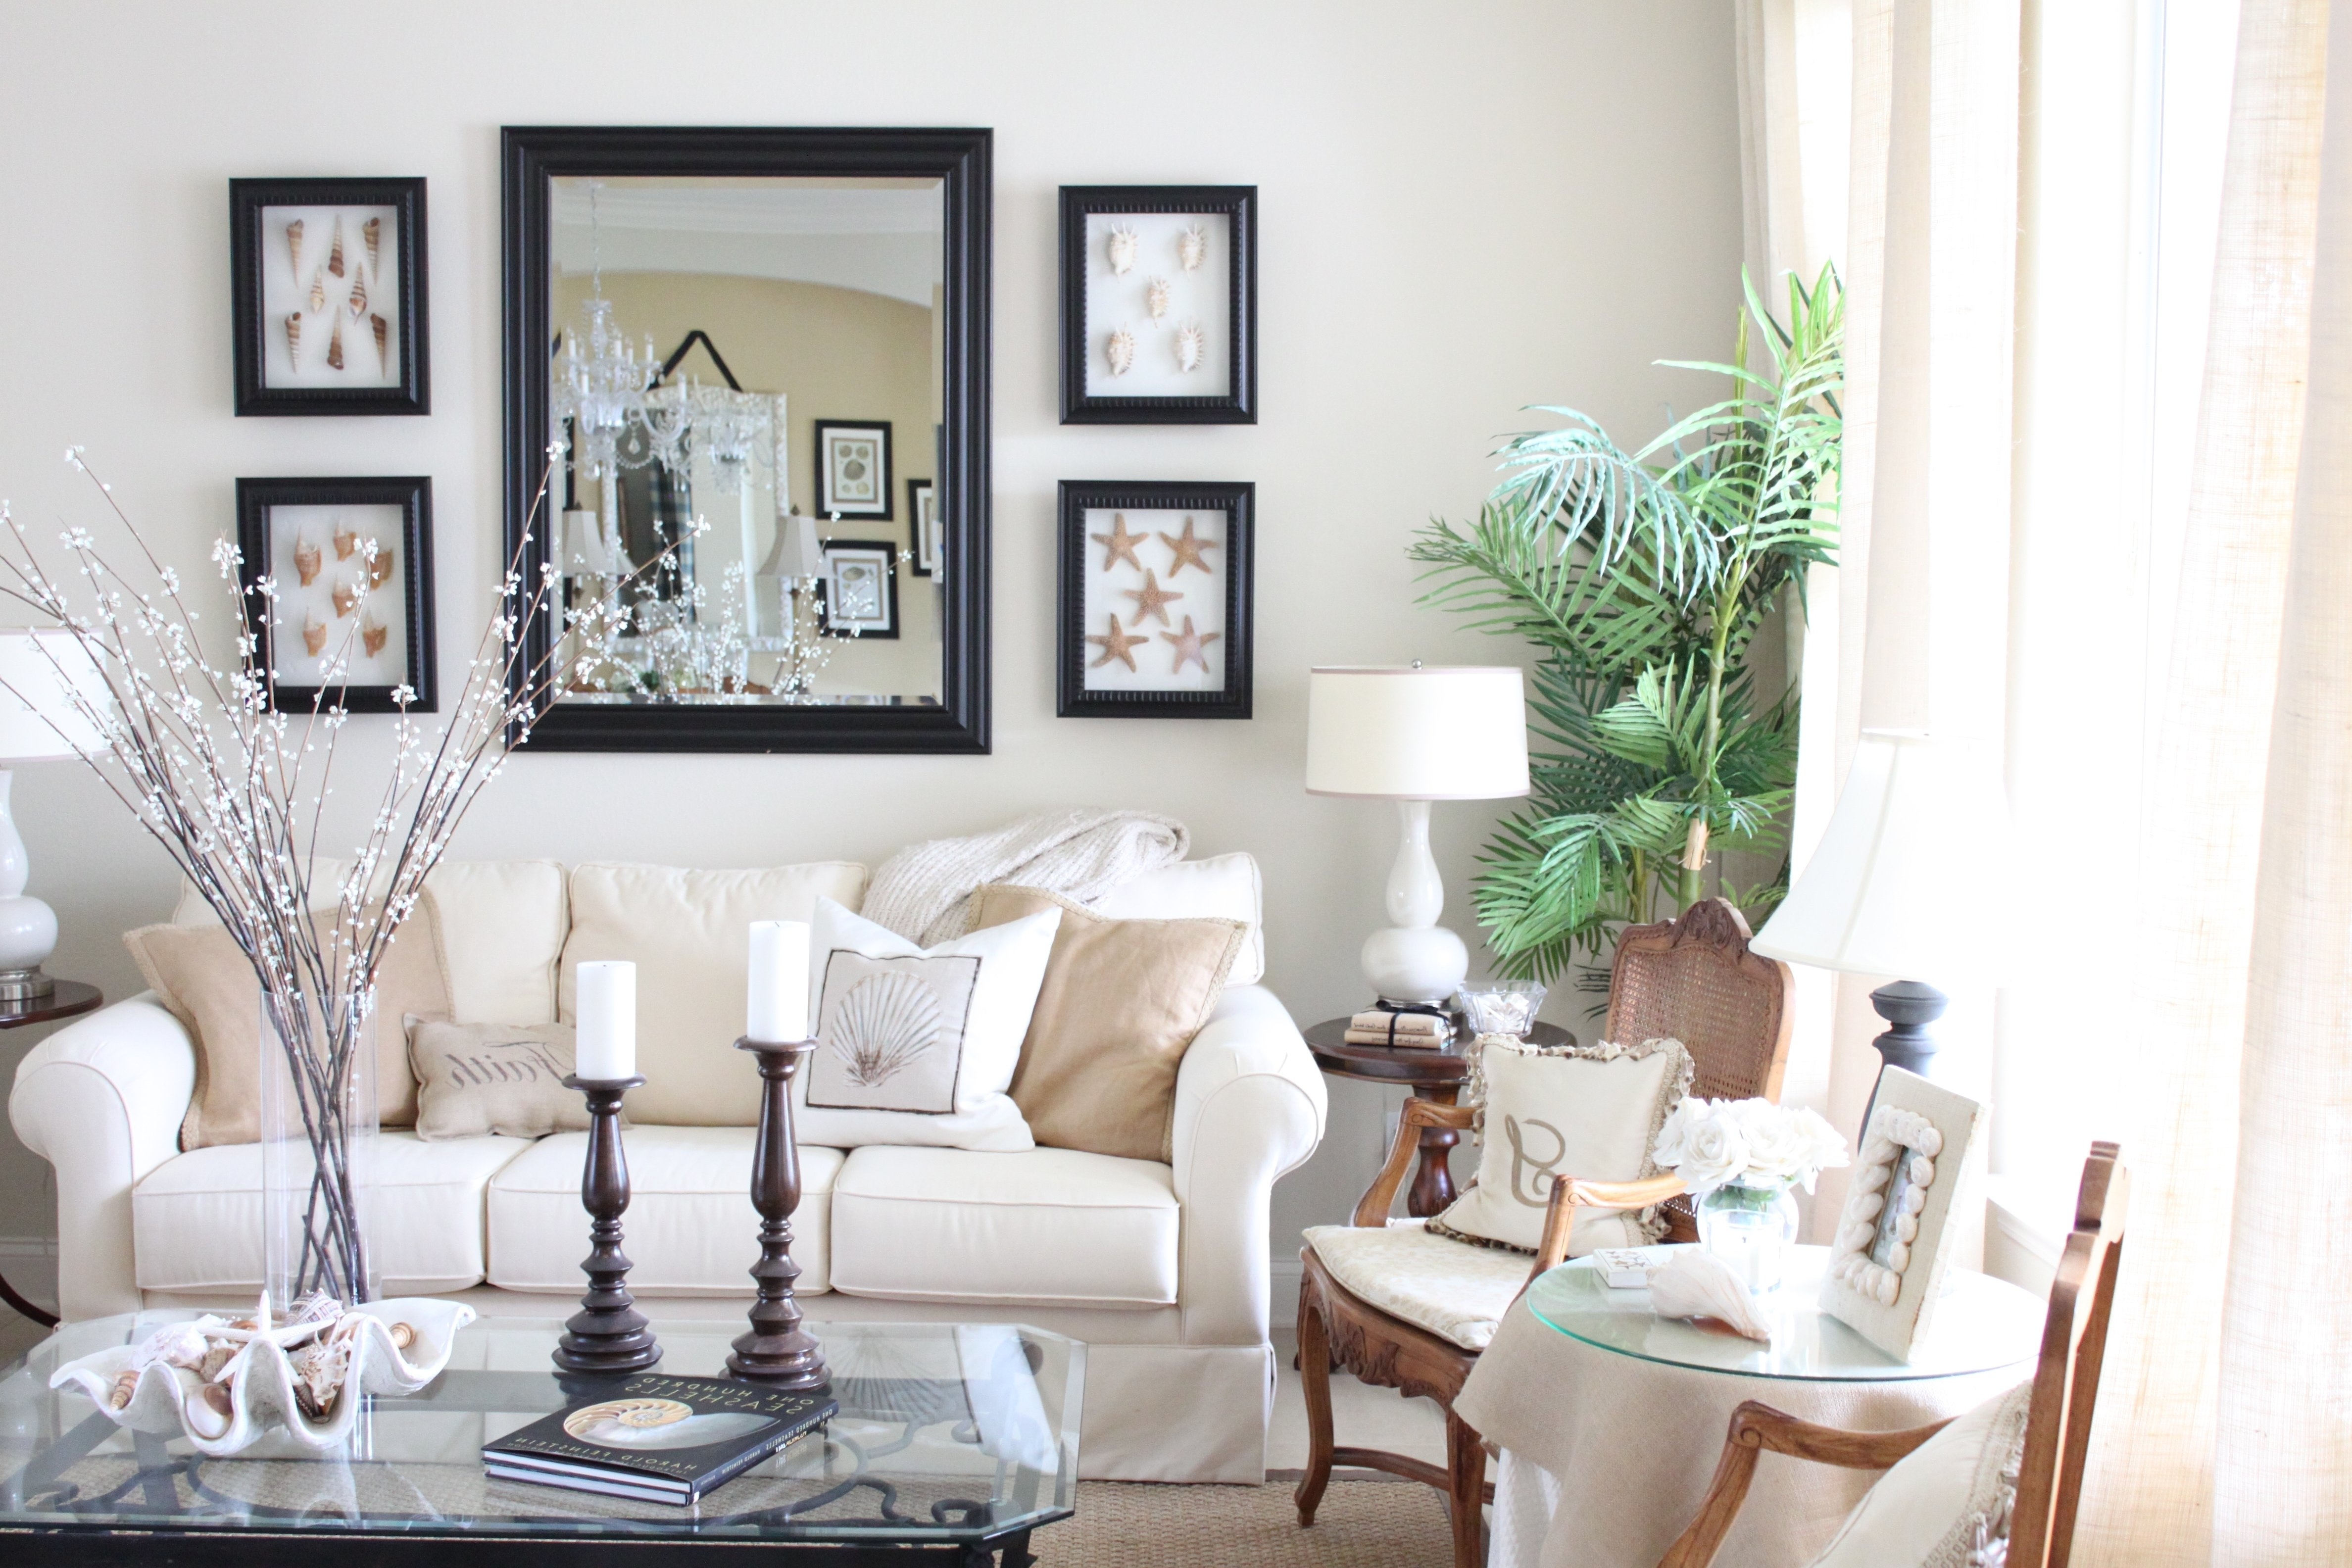 10 Stylish Living Room Decorating Ideas Pinterest adorable small living room decorating ideas pinterest l bee together 2021